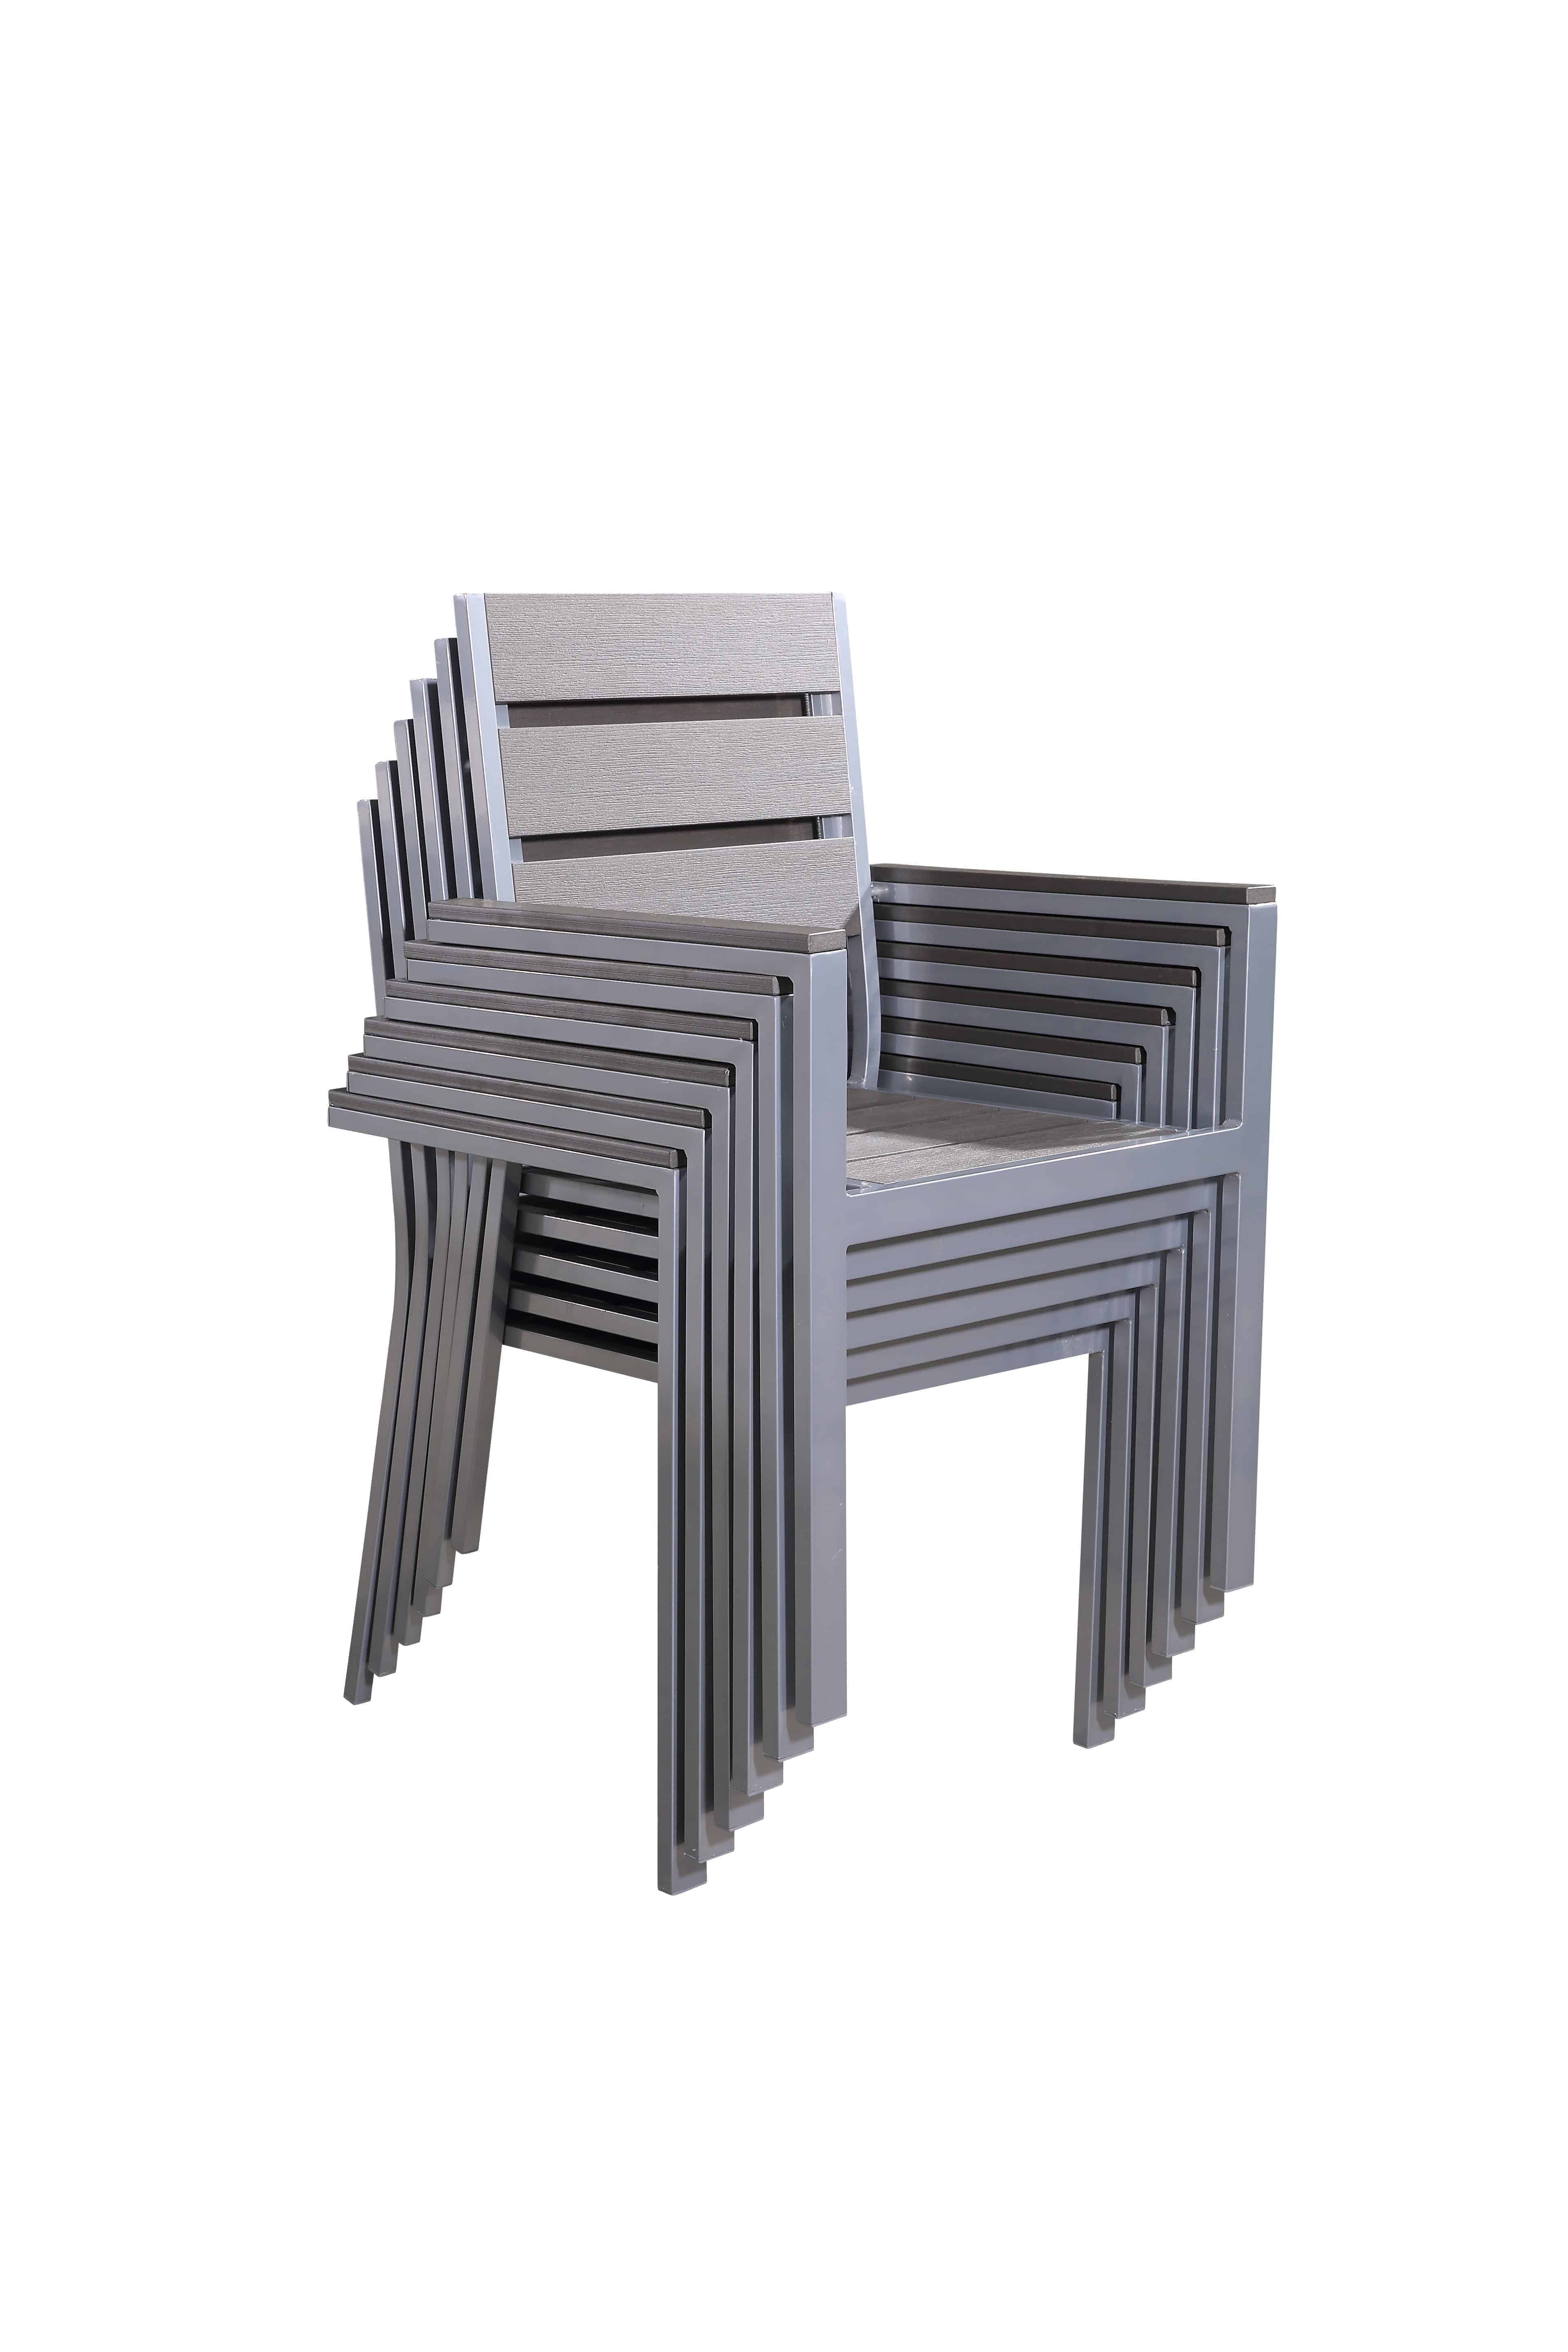 6 Chair Patio Set Cover